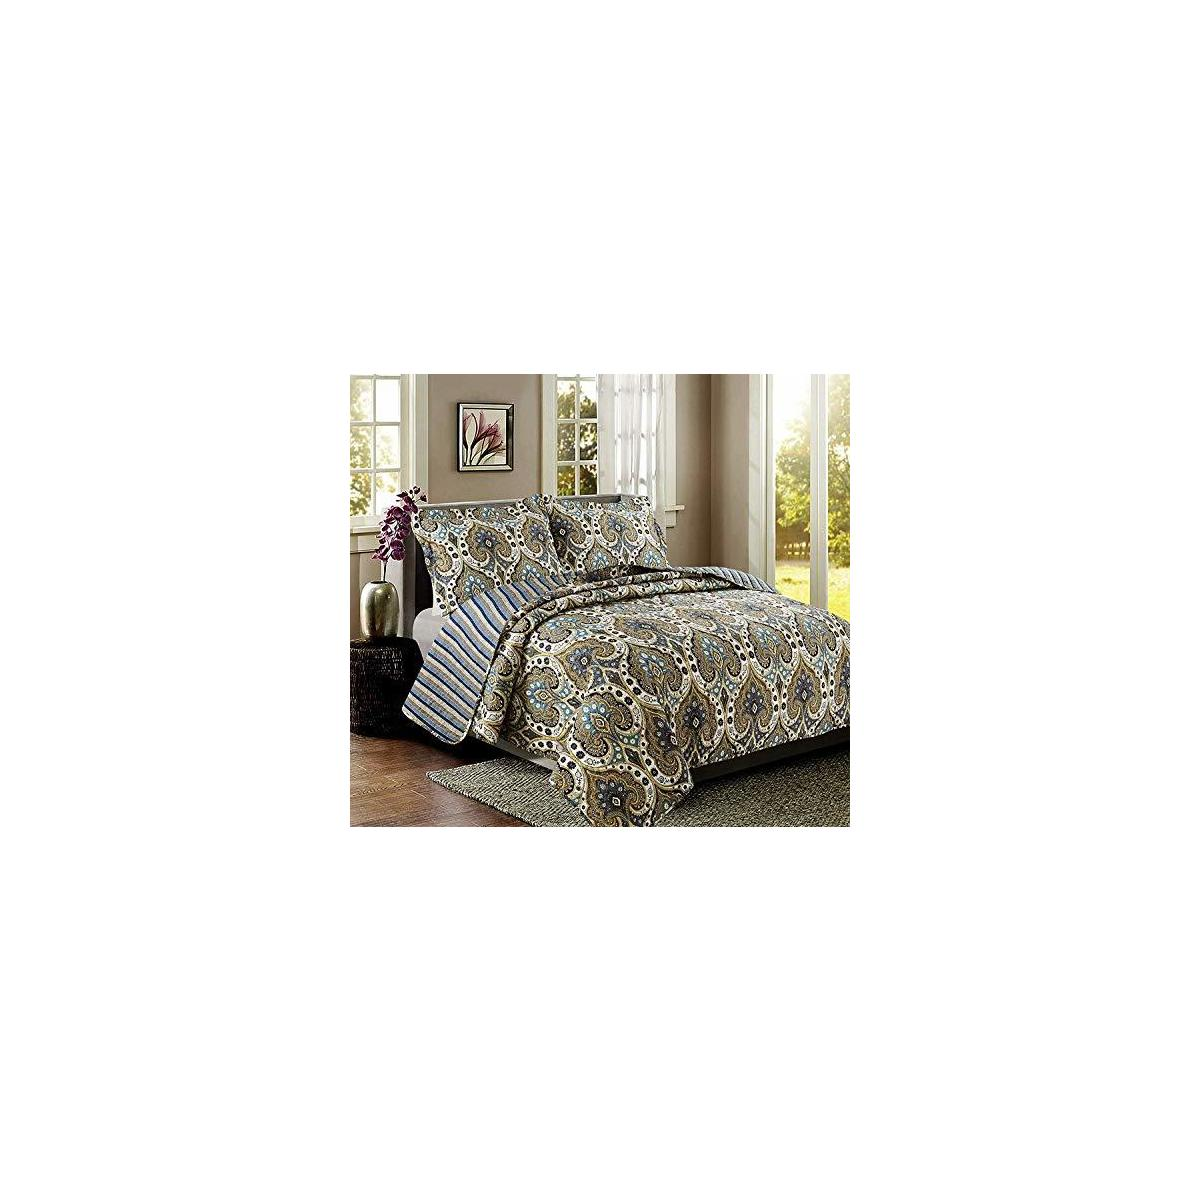 Quilt Sets, Luxurious 3pc Bedspreads (Sonoma King)